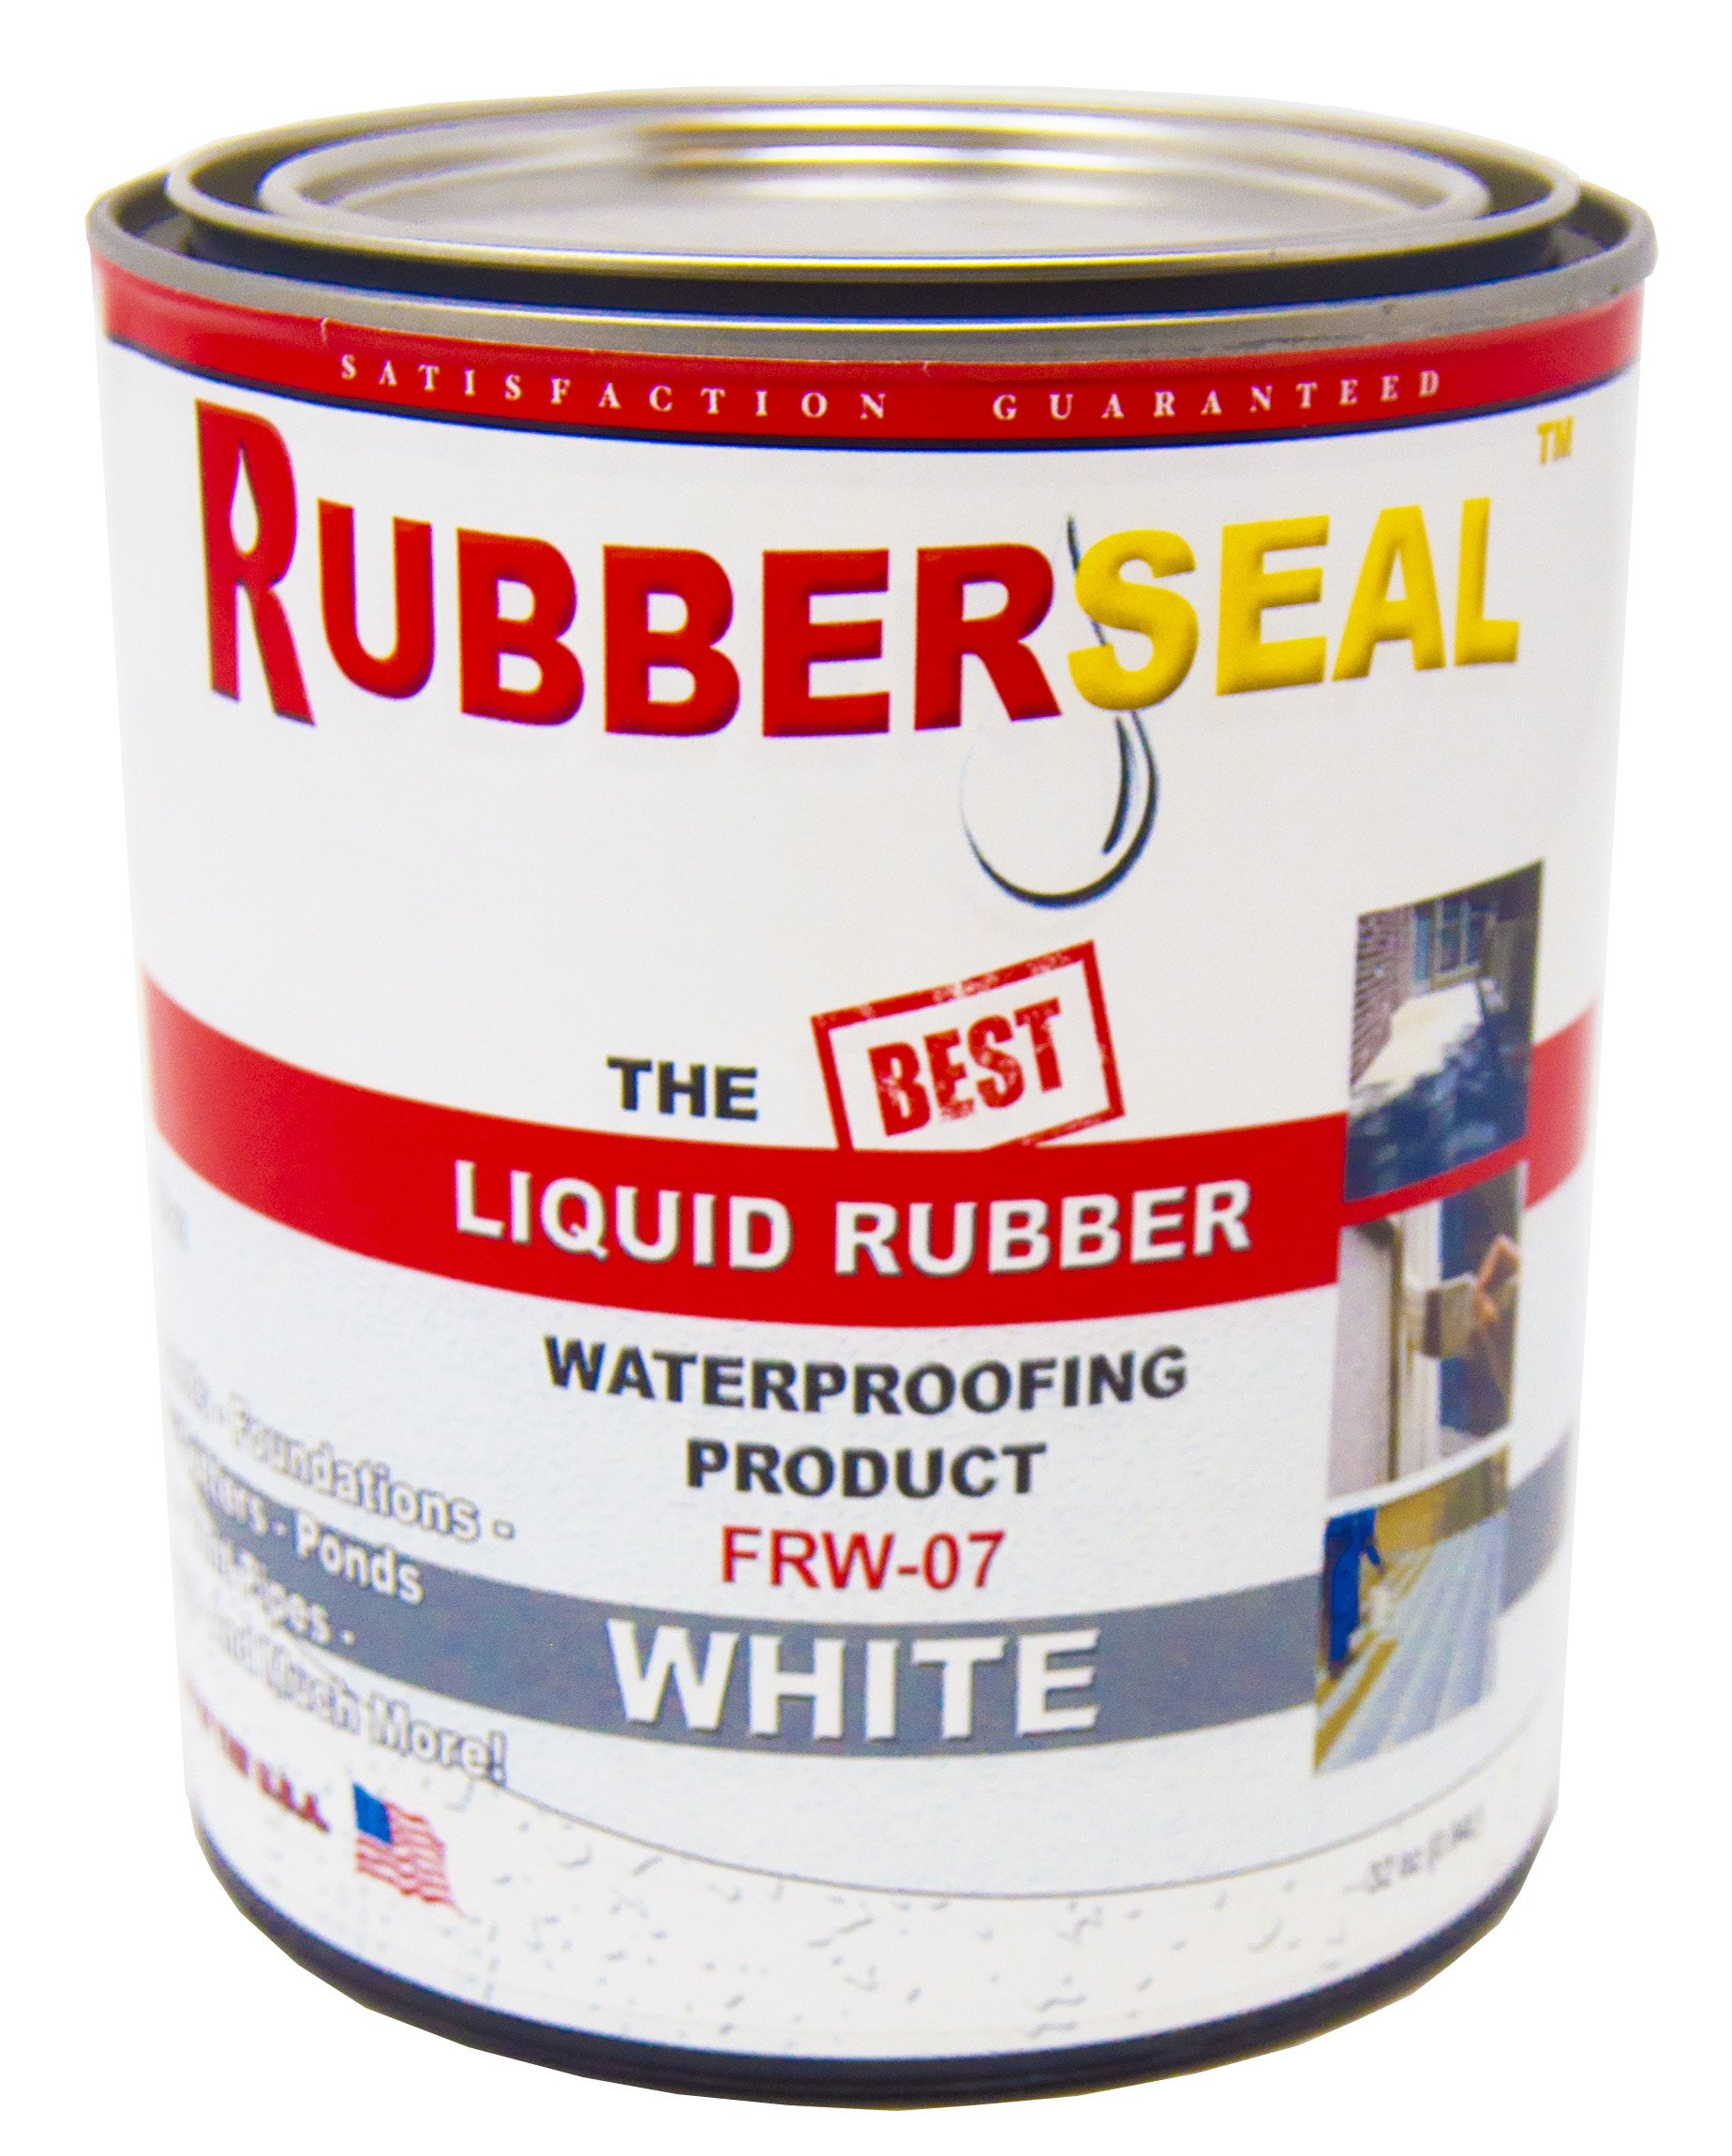 Rubberseal Liquid Rubber Waterproofing and Protective Coating -- Roll On WHITE (32 ounces)